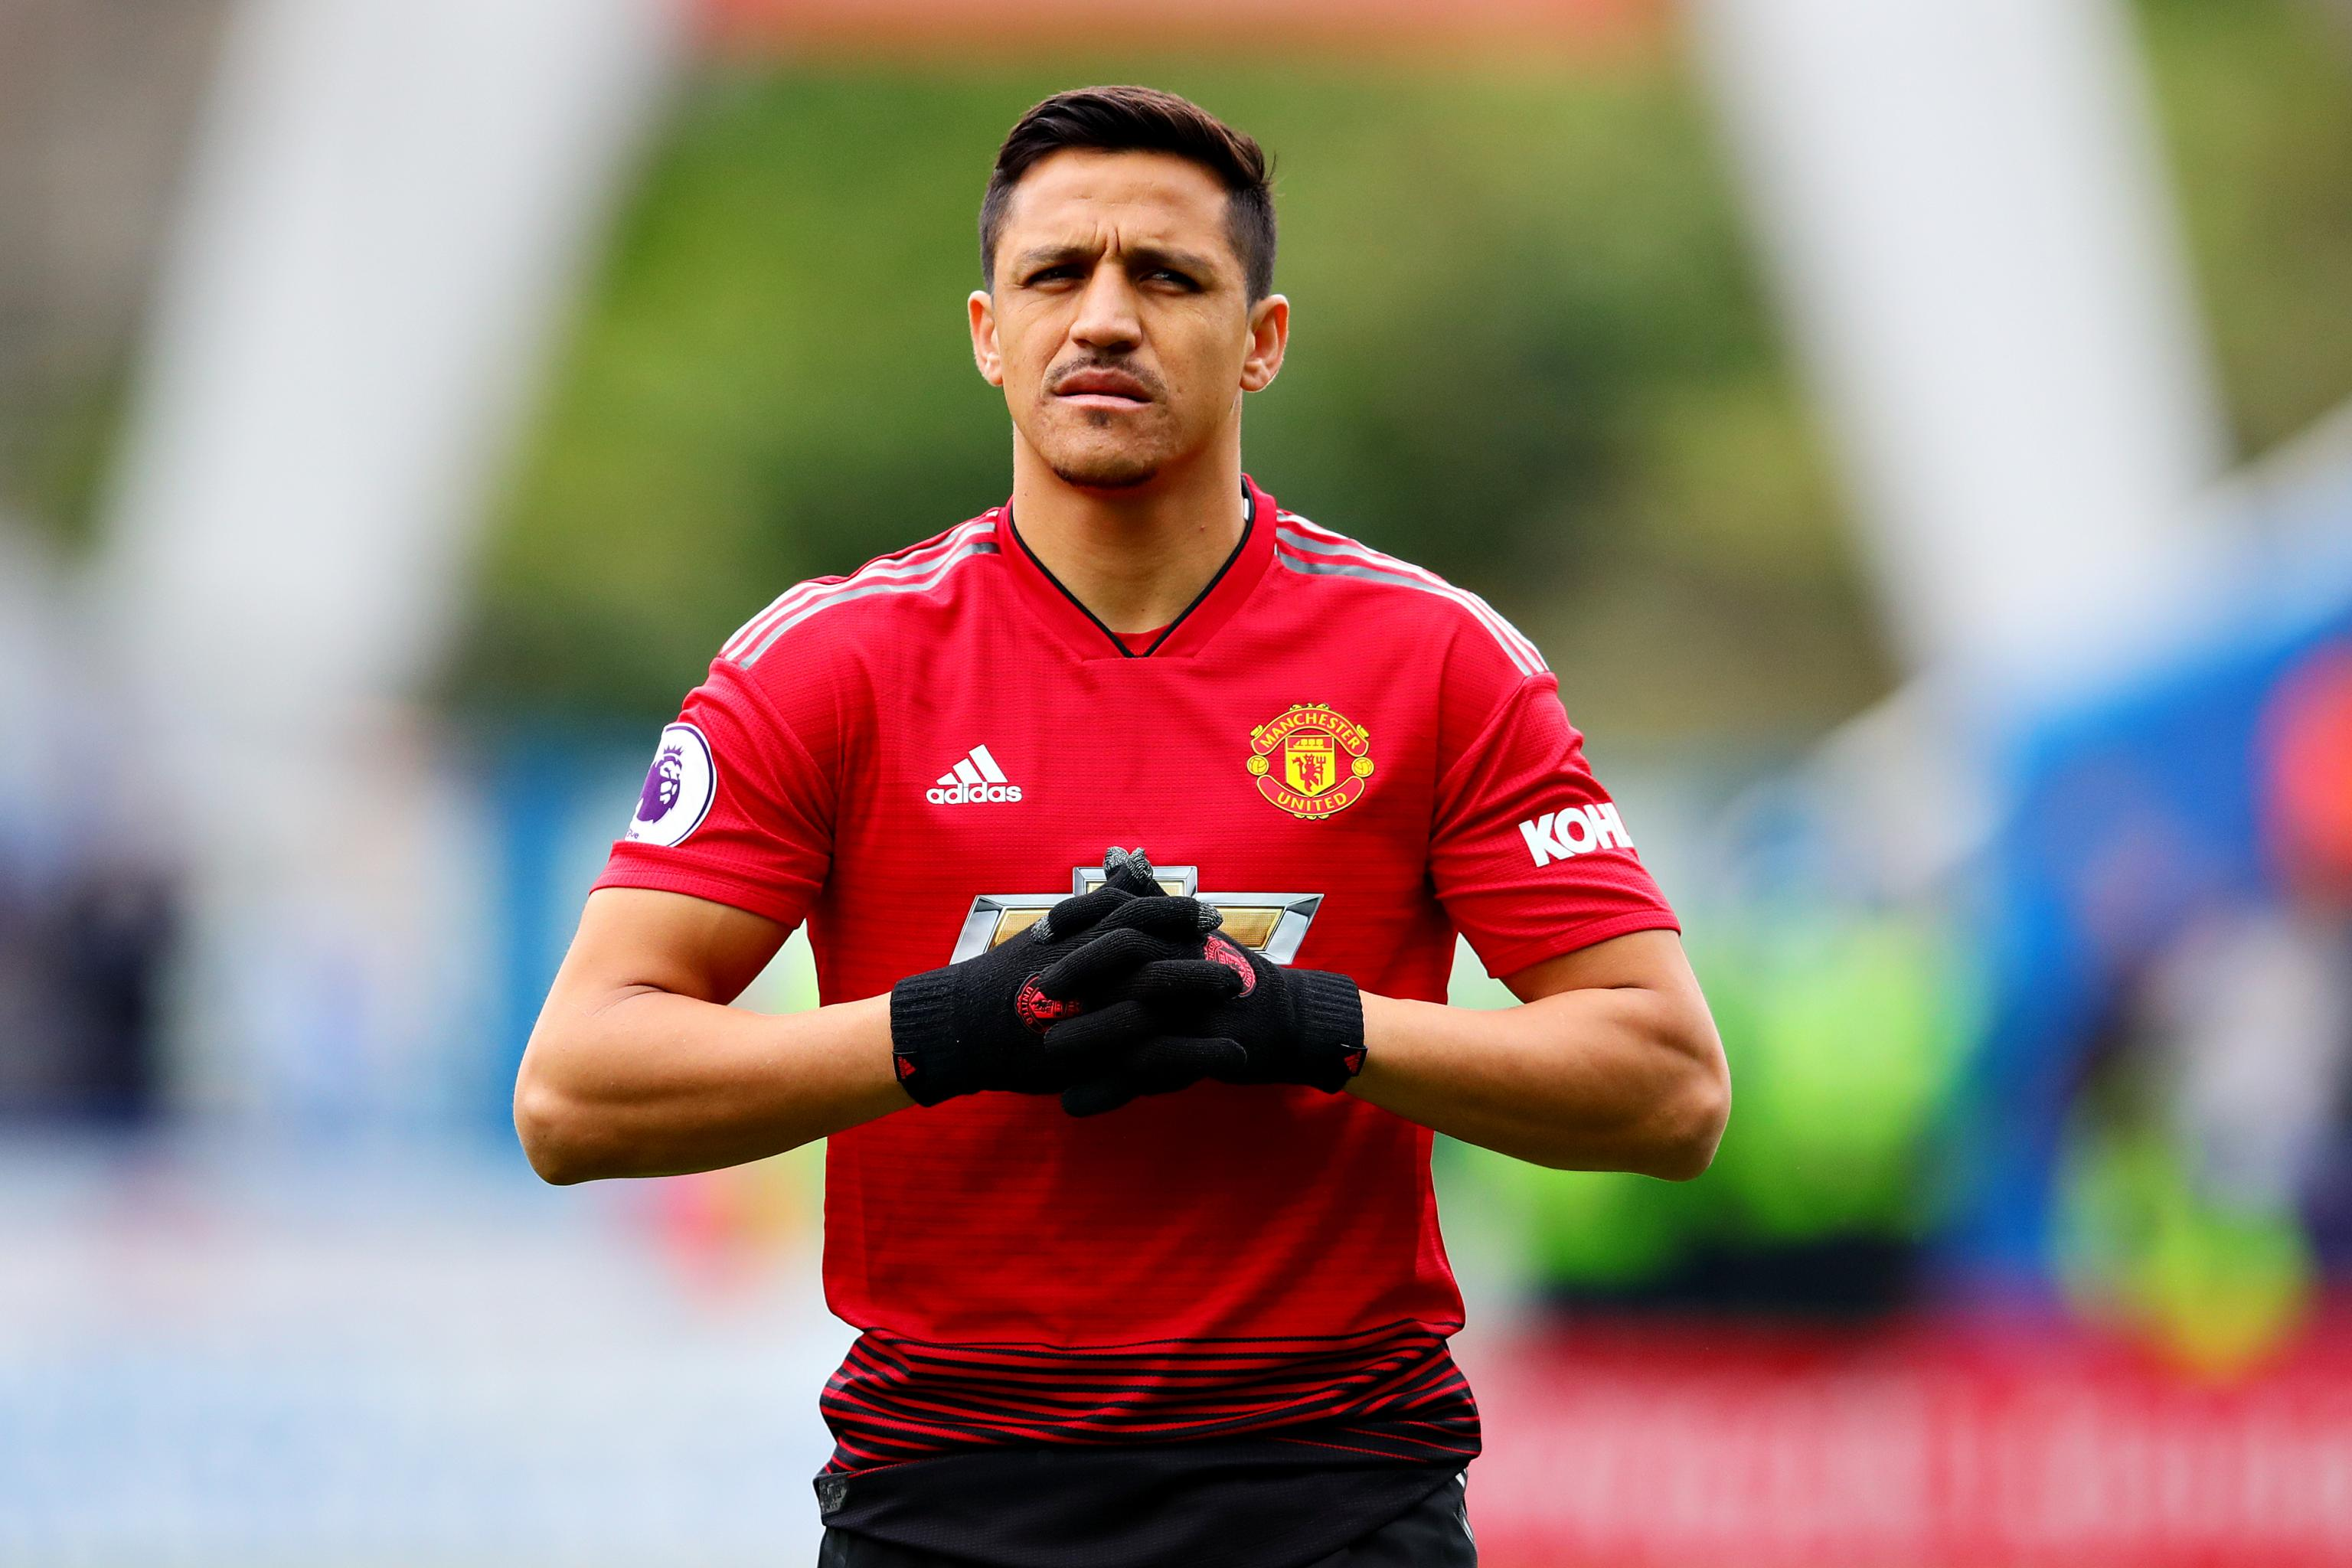 Report: Alexis Sanchez, Inter Milan Loan Transfer from Manchester United  'Done'   Bleacher Report   Latest News, Videos and Highlights